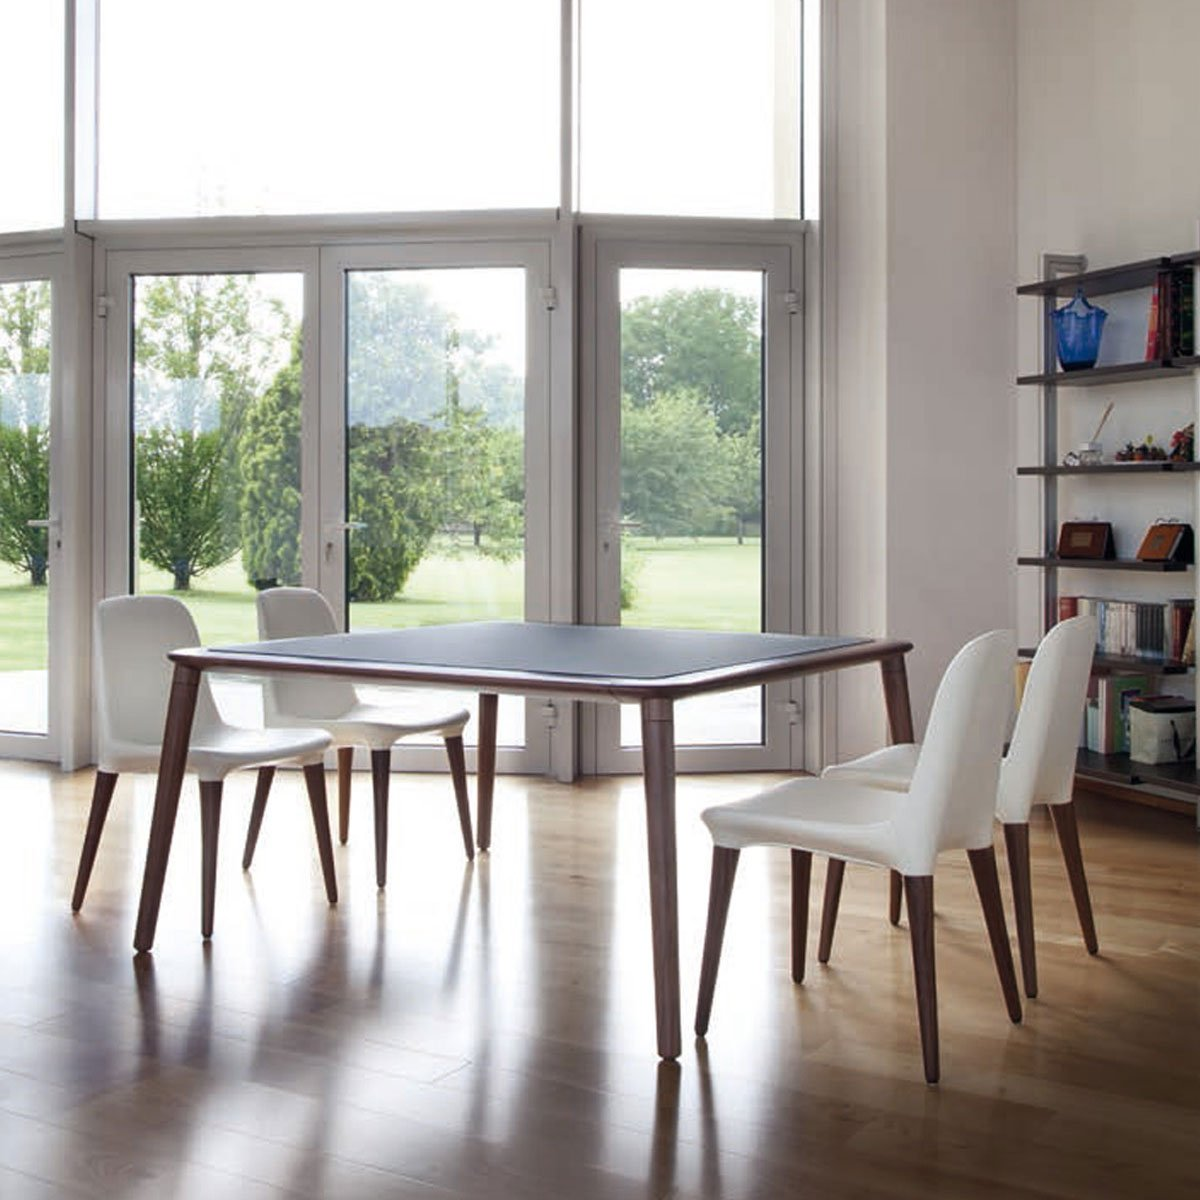 jonathan wooden dining table with glass top klarity. Black Bedroom Furniture Sets. Home Design Ideas